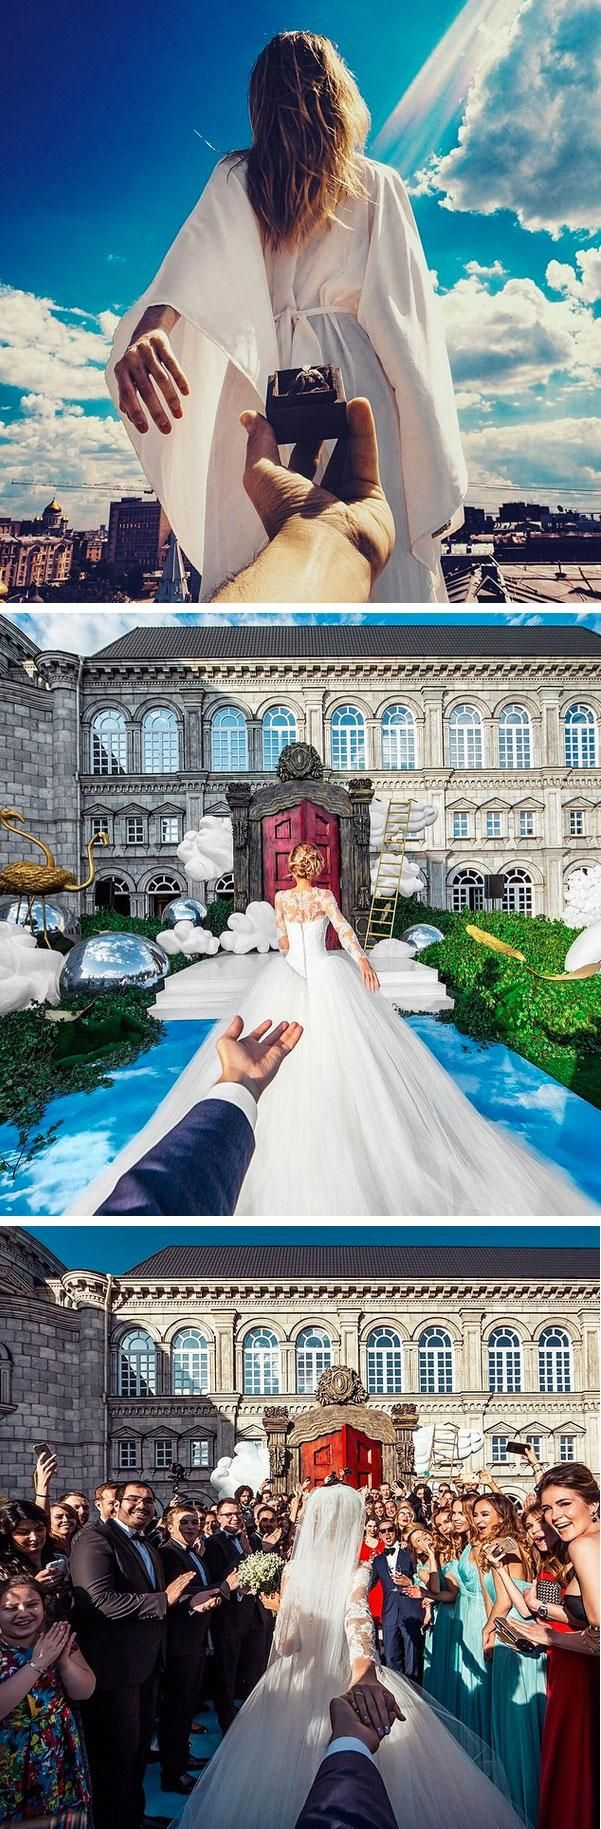 "Russian photographer Murad Osmann and his longtime girlfriend Natalia Zakharova documented their wedding in the style of their famous ""Follow Me"" series."